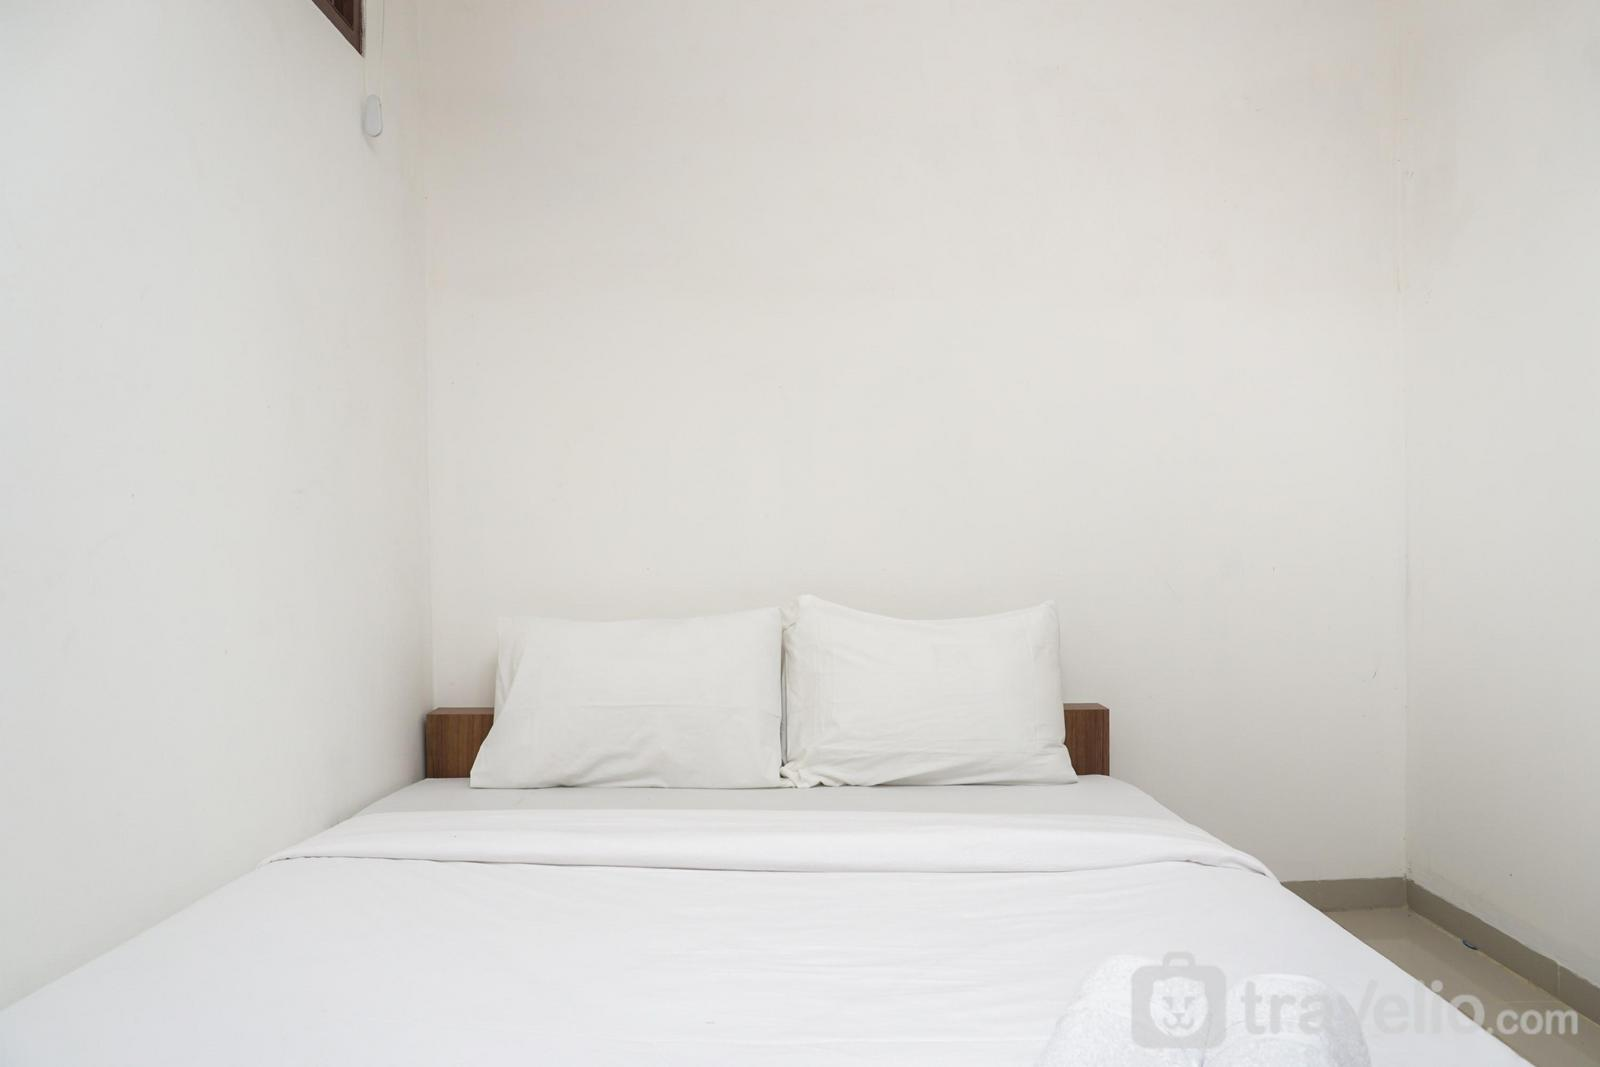 Meruya 8 Guest House - Minimalist Studio 1st Floor at Meruya 8 Puri Kembangan By Travelio